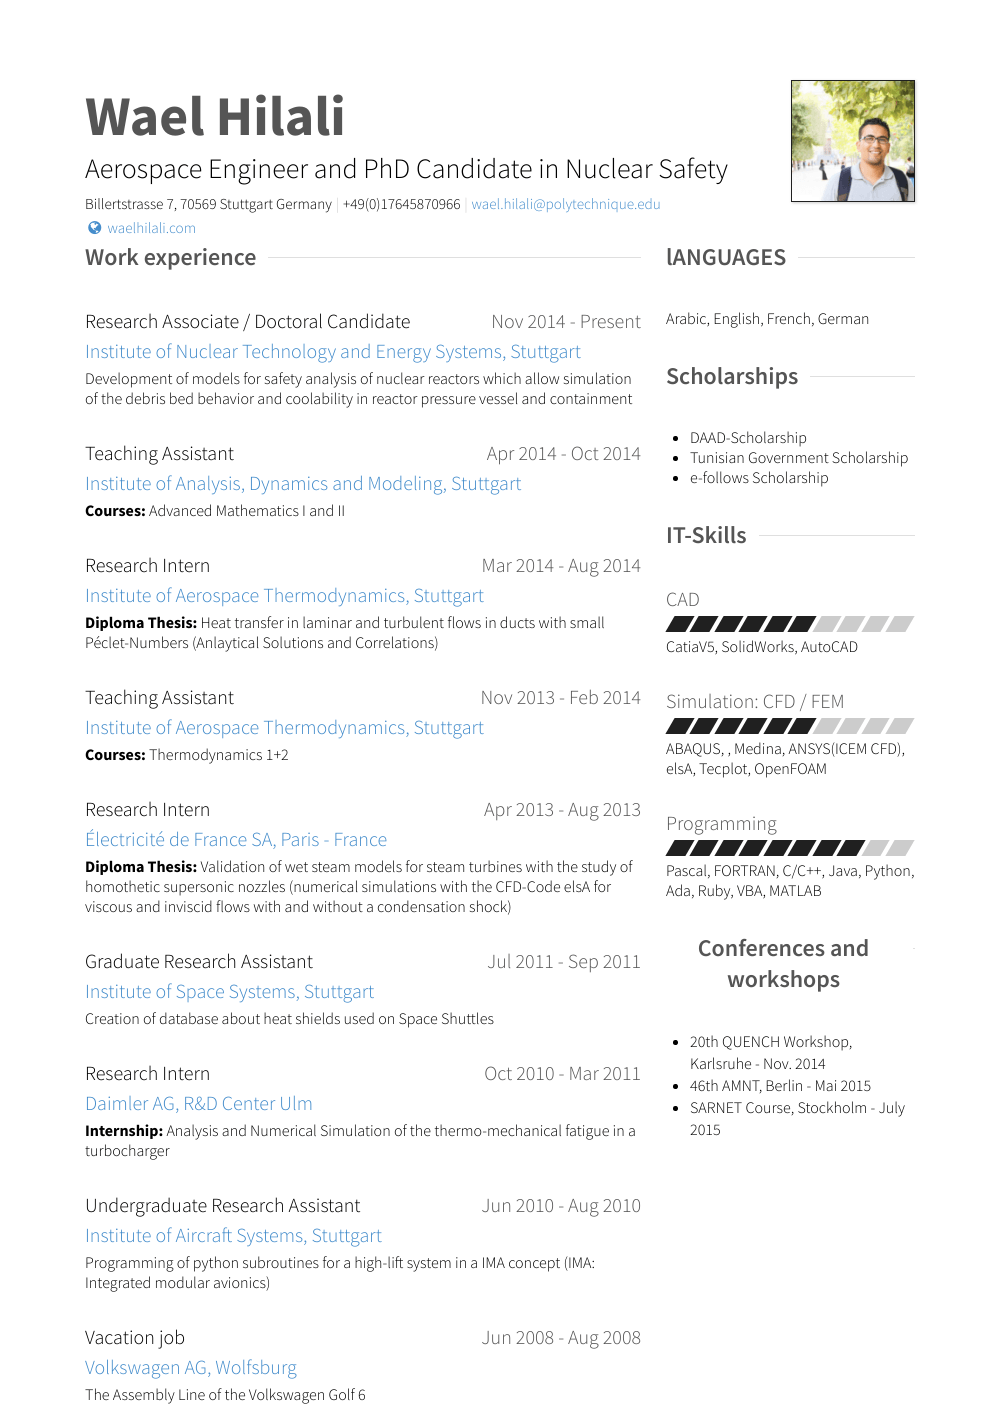 Research Associate - Resume Samples and Templates | VisualCV